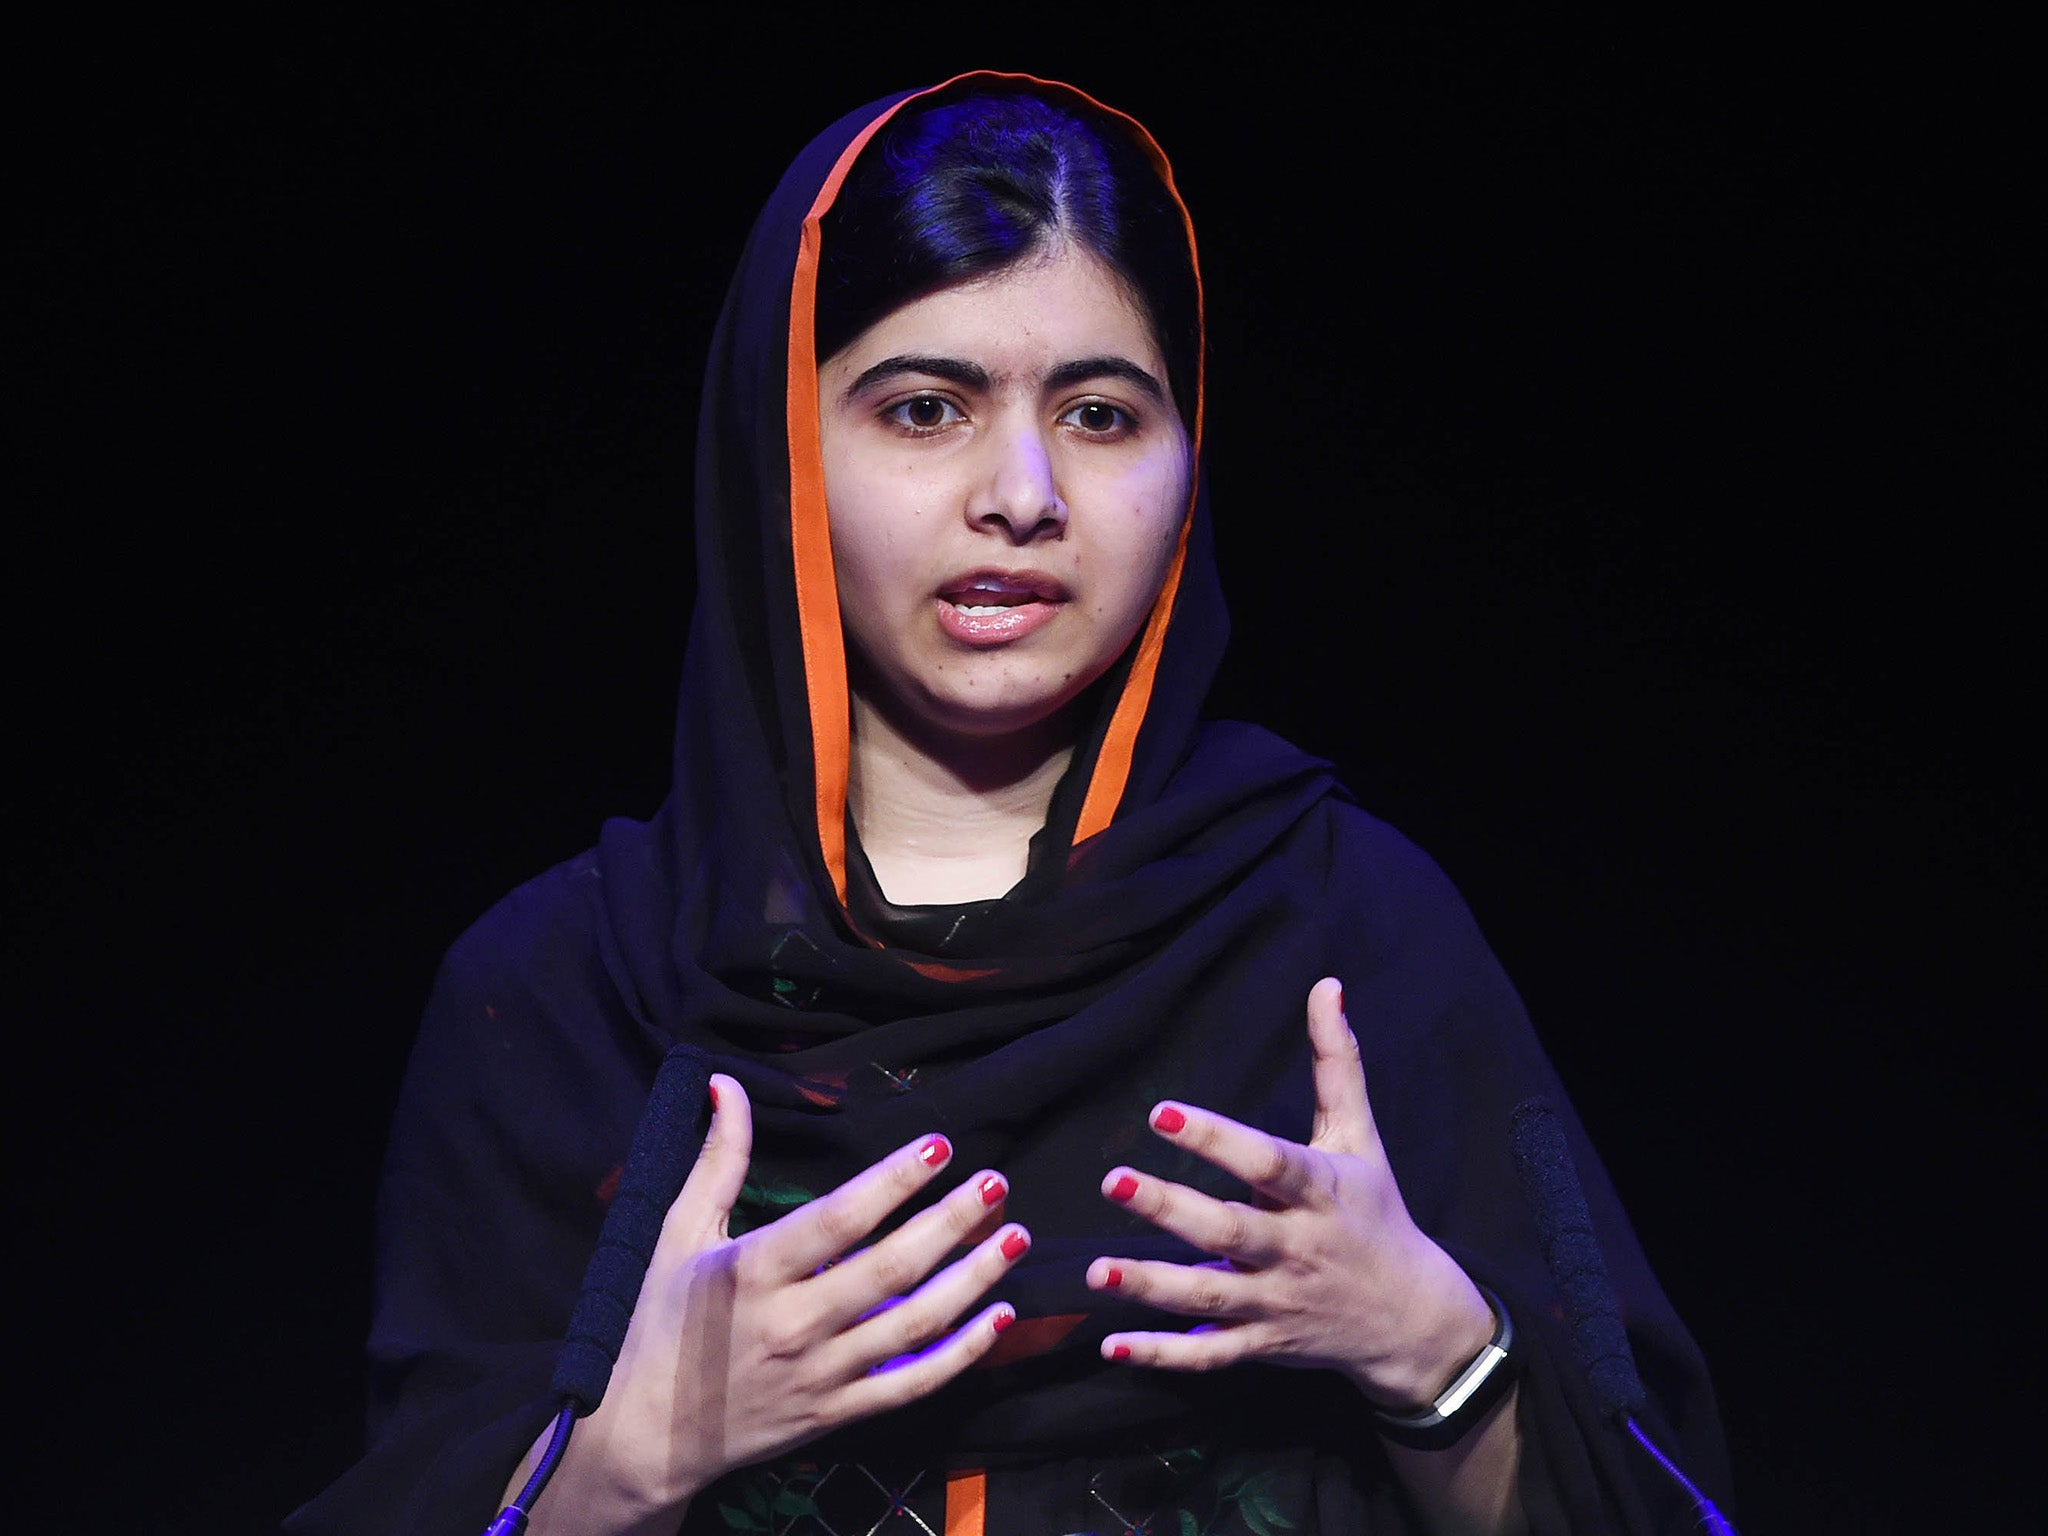 malala yousafzai Nobel peace prize laureate malala yousafzai has returned to pakistan nearly six years after she was shot by the taliban.